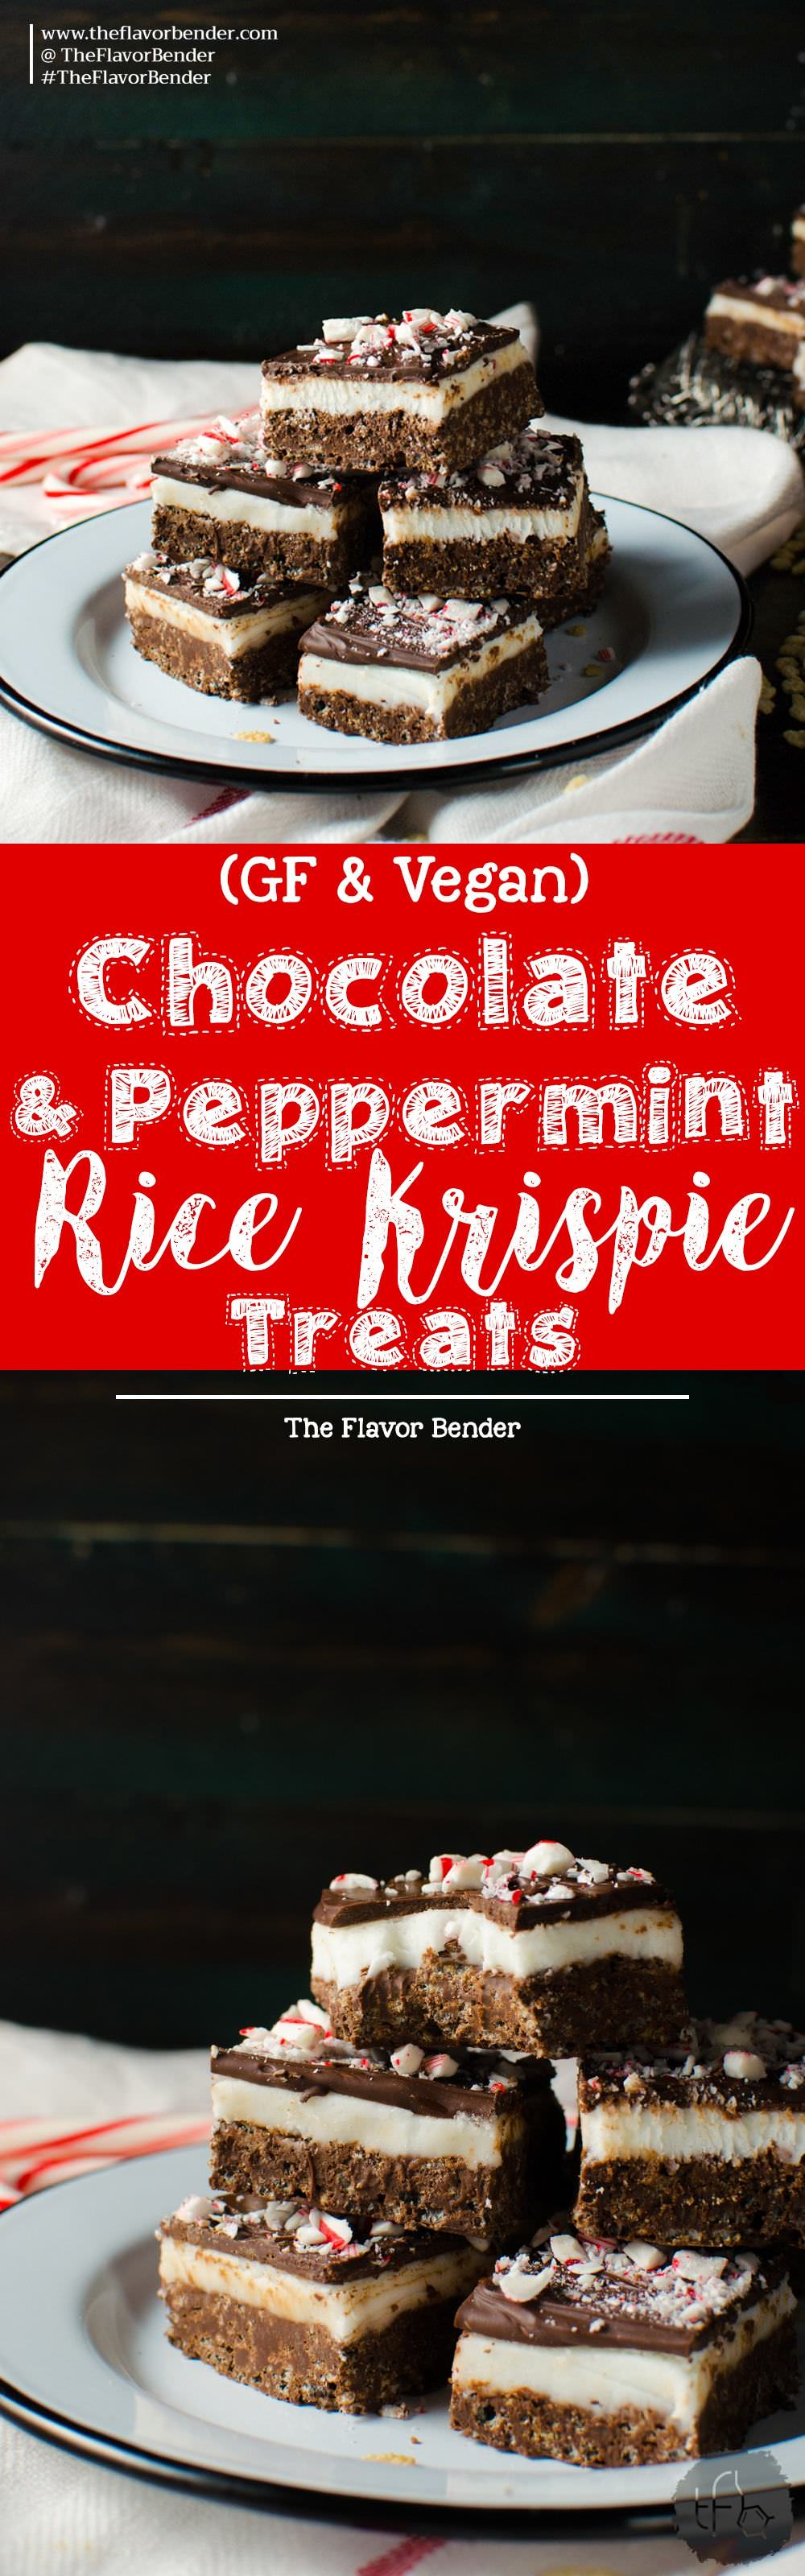 Chocolate Peppermint Rice Krispie Treats - These Rice Krispie Bars have a crunchy, cripsy dark chocolate rice krispie base with a soft refreshing peppermint center and topped with a thin layer of dark chocolate! An addictive Chocolate peppermint treat that's perfect for the holidays and for gift giving! Easy to make and kid-friendly. Gluten free and vegan!